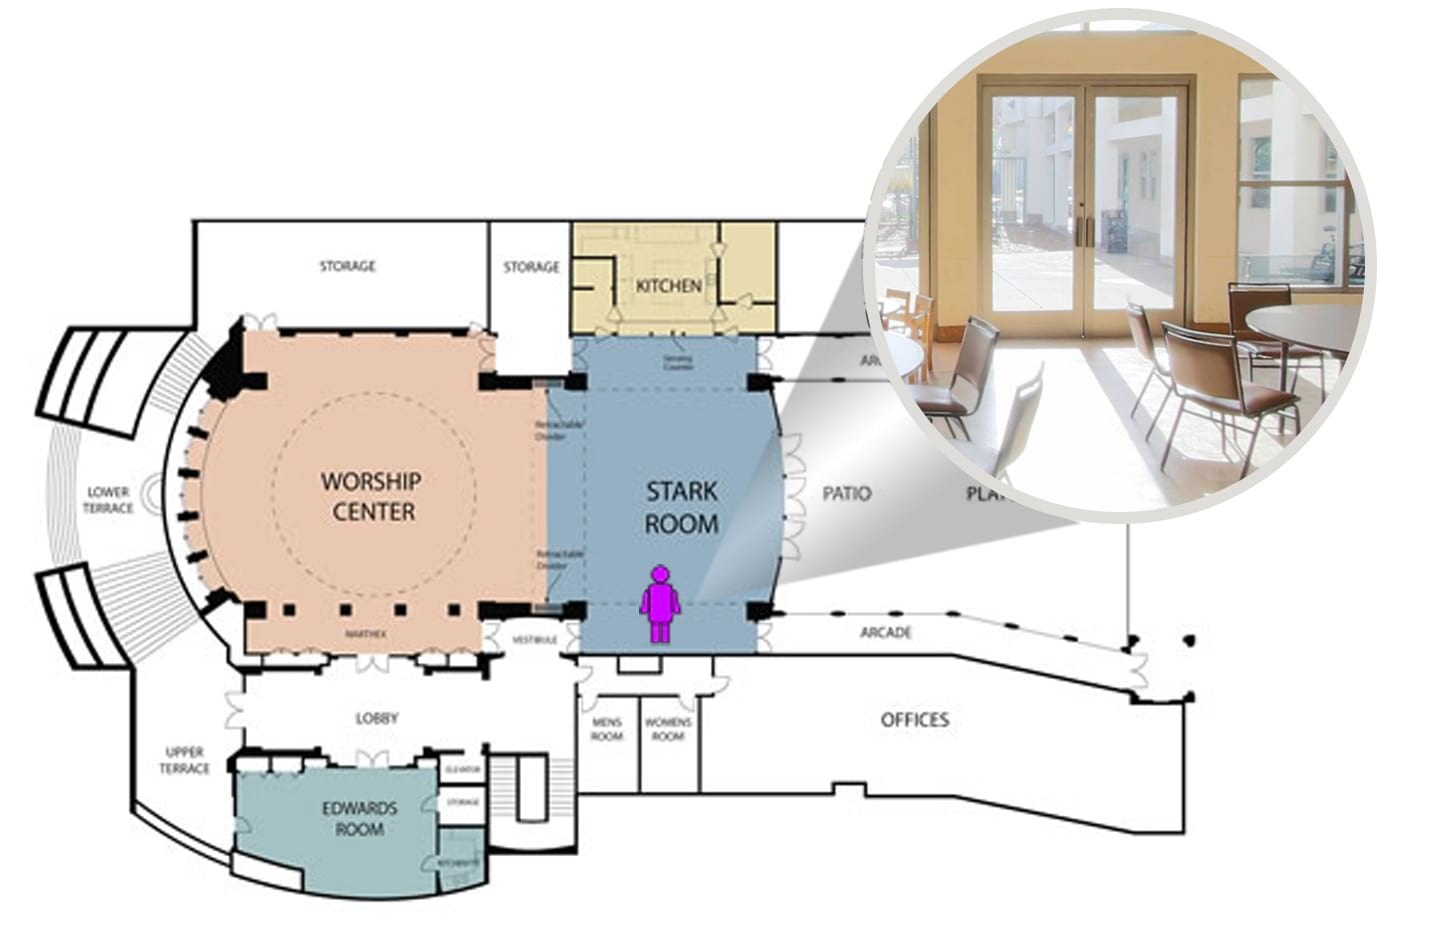 View from spot within the floor plan